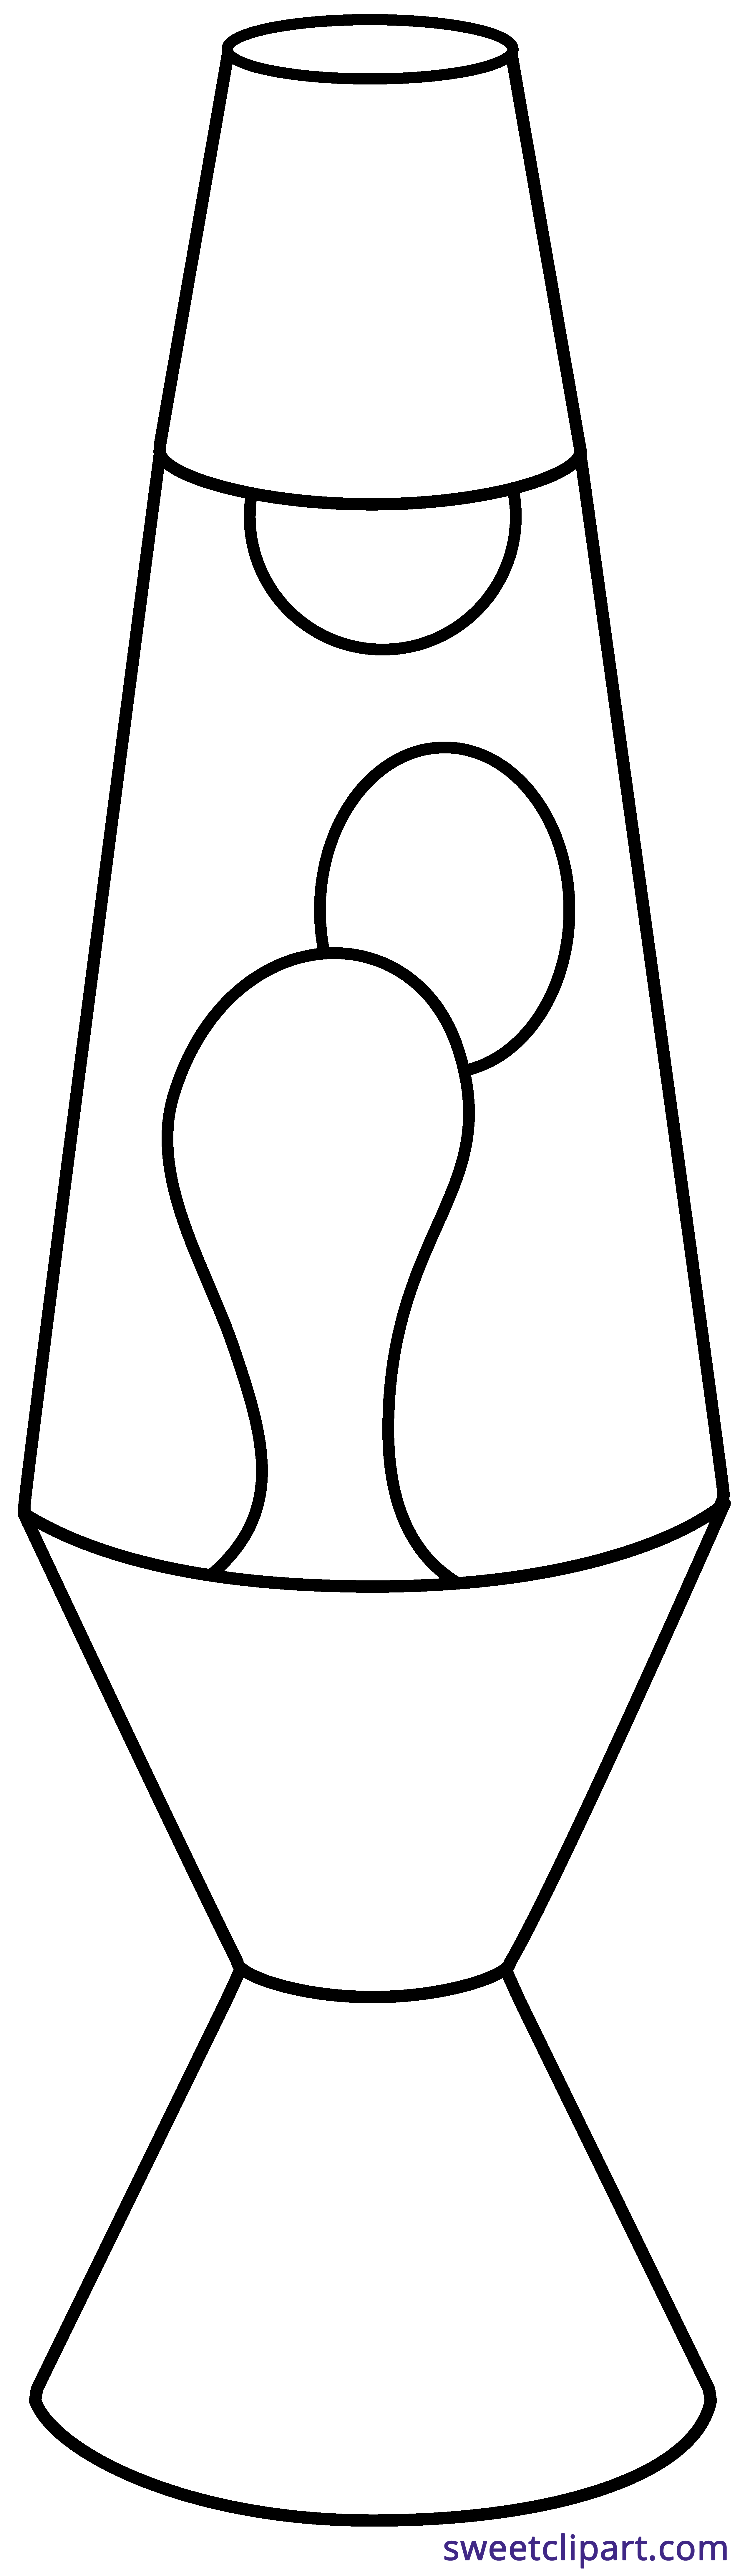 Lamp clipart black and white.  collection of outline